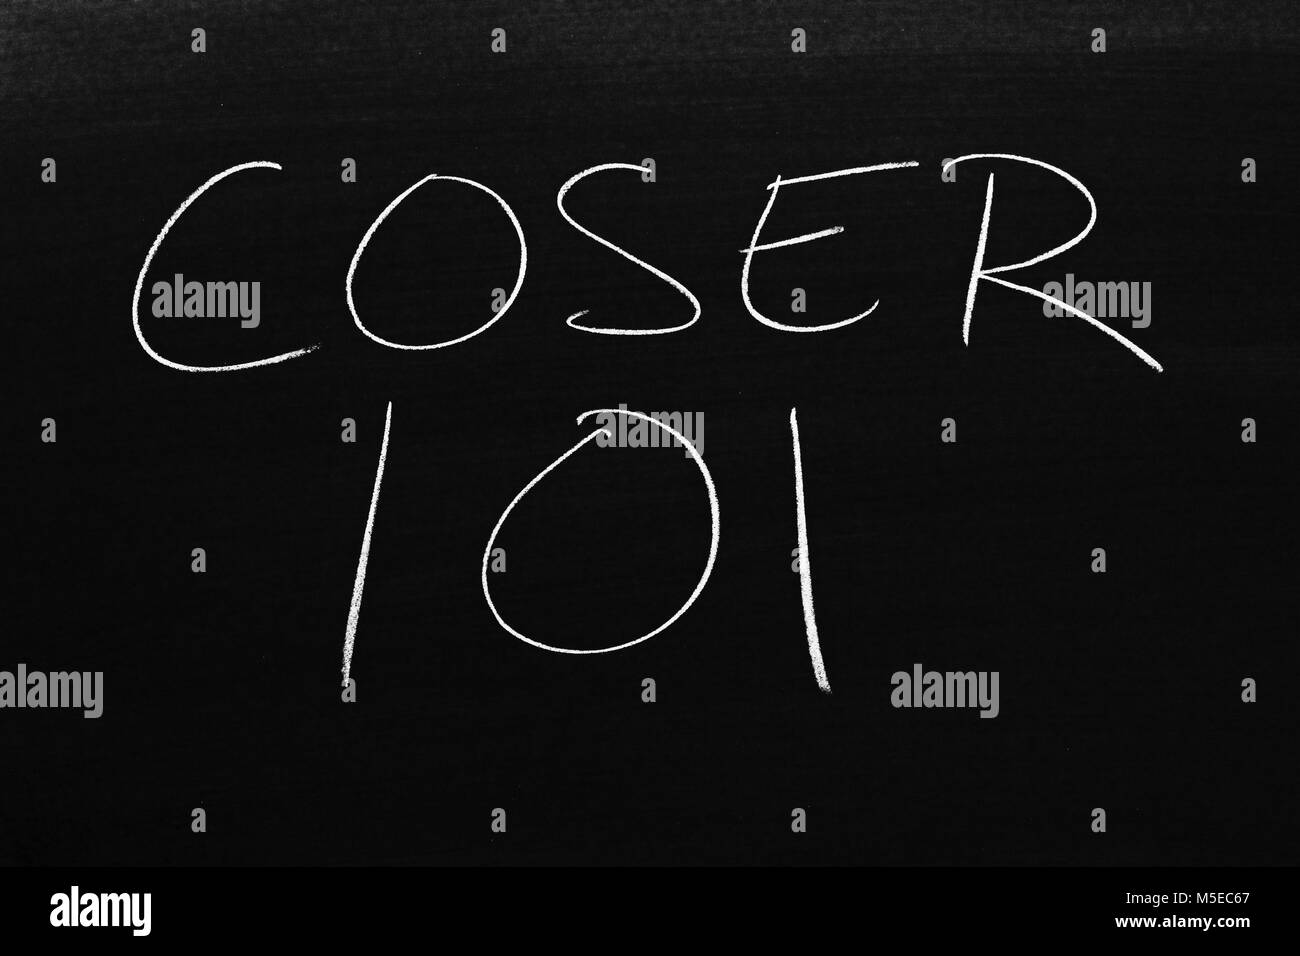 The words Coser 101 on a blackboard in chalk - Stock Image